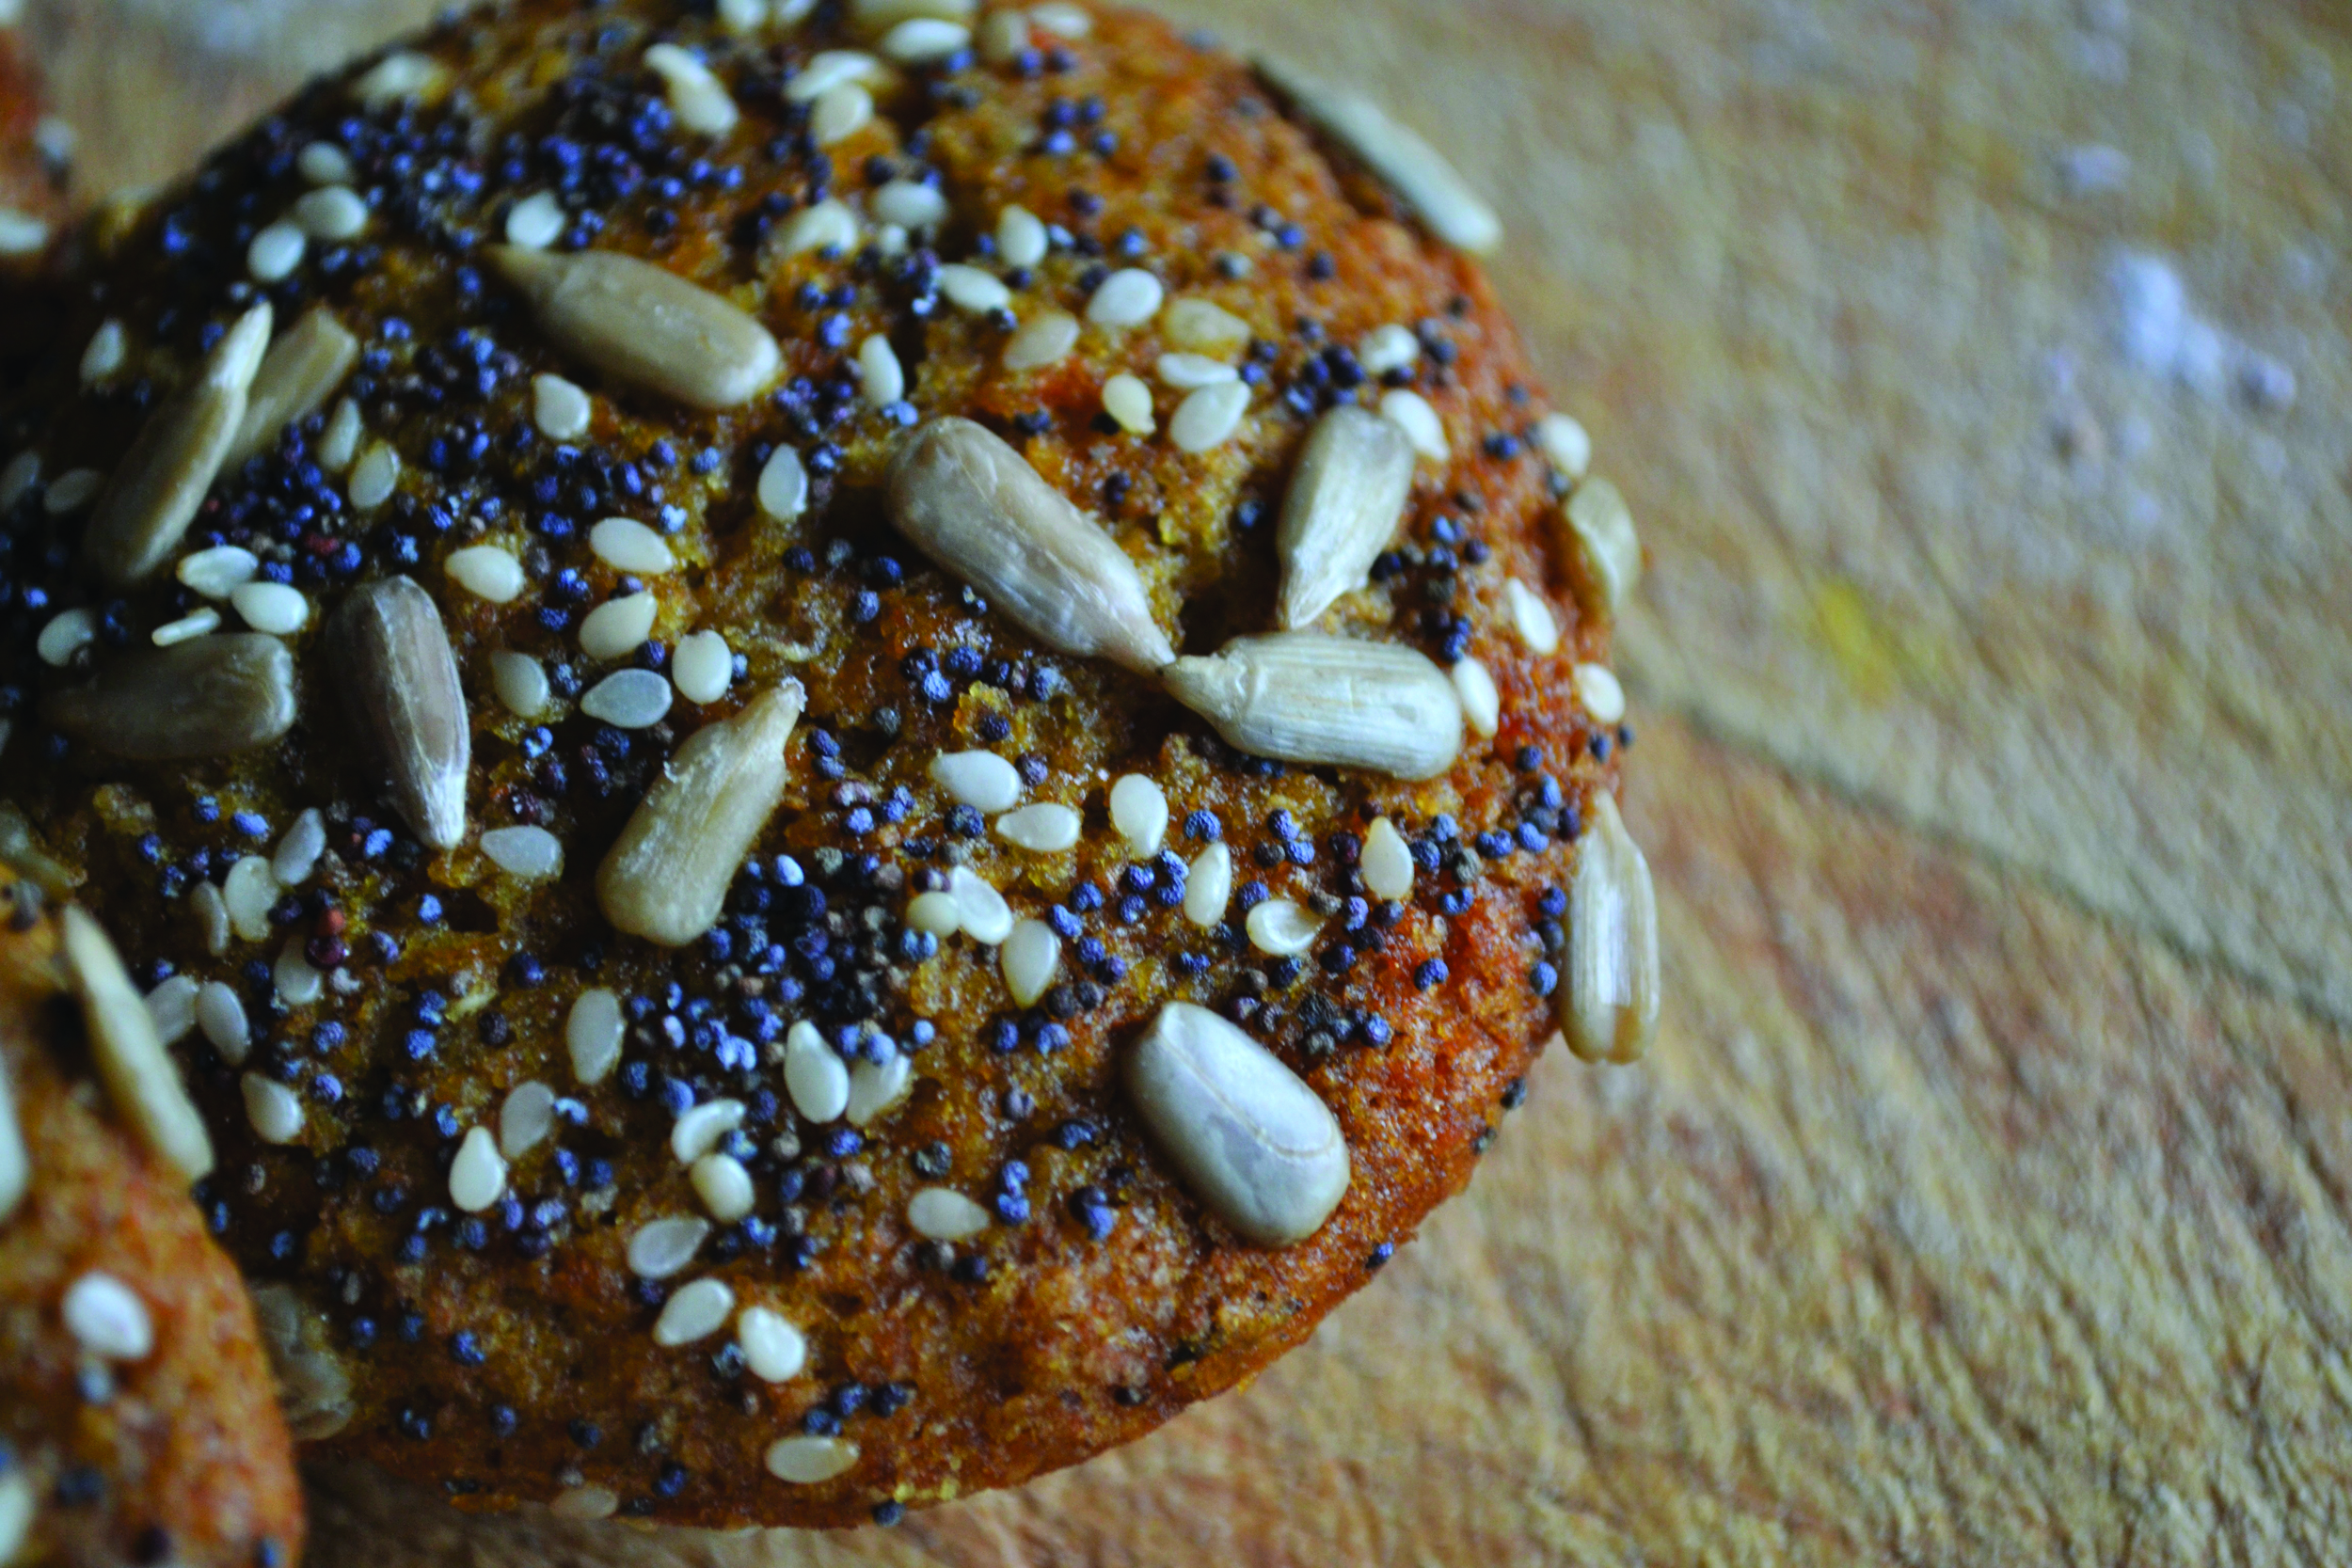 Seed cake – an after supper morsel fit for a hobbit